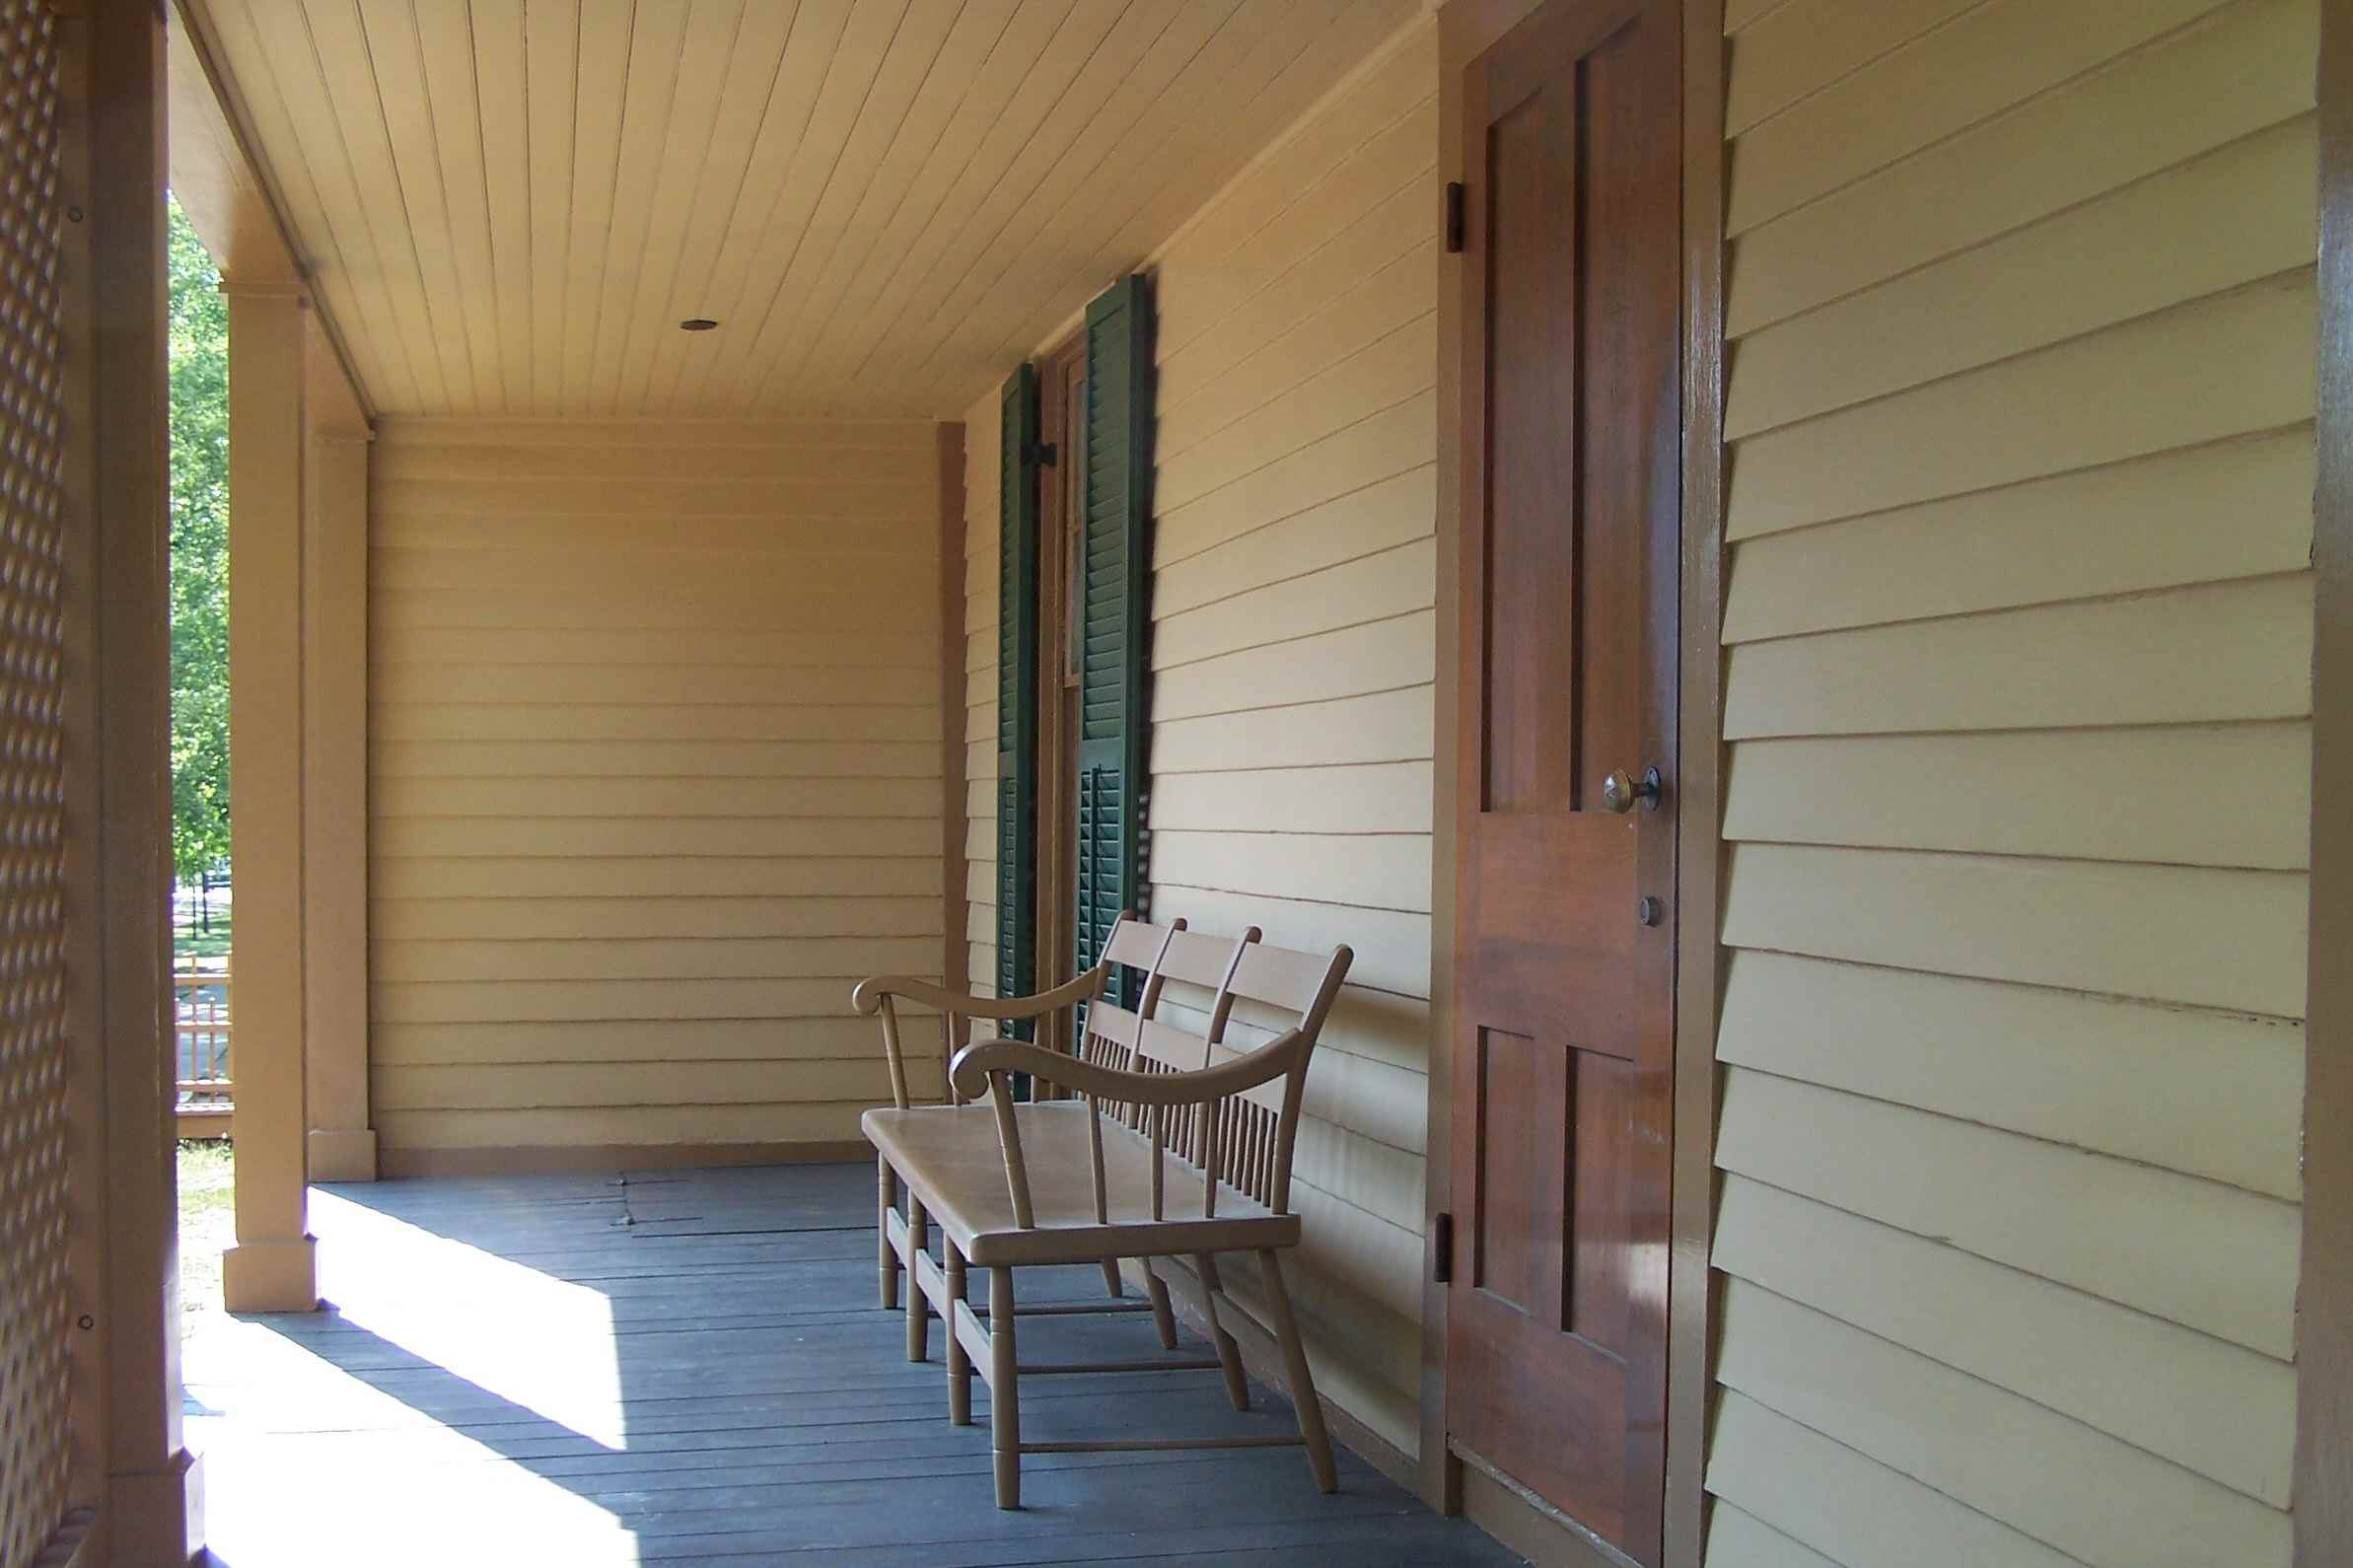 Country Side Porch at Lincoln's Springfield Home